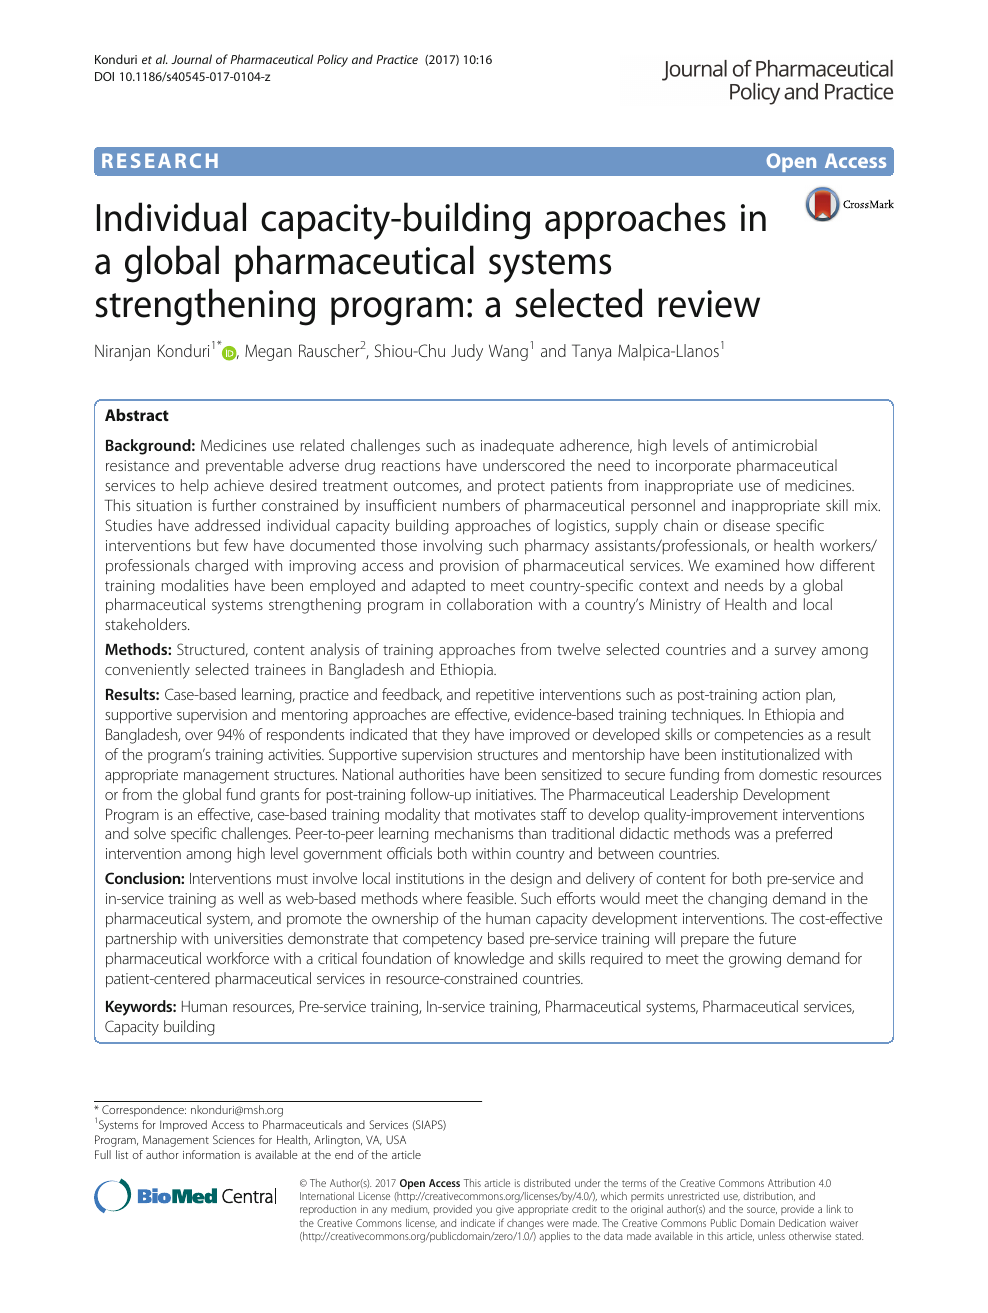 Individual capacity-building approaches in a global pharmaceutical